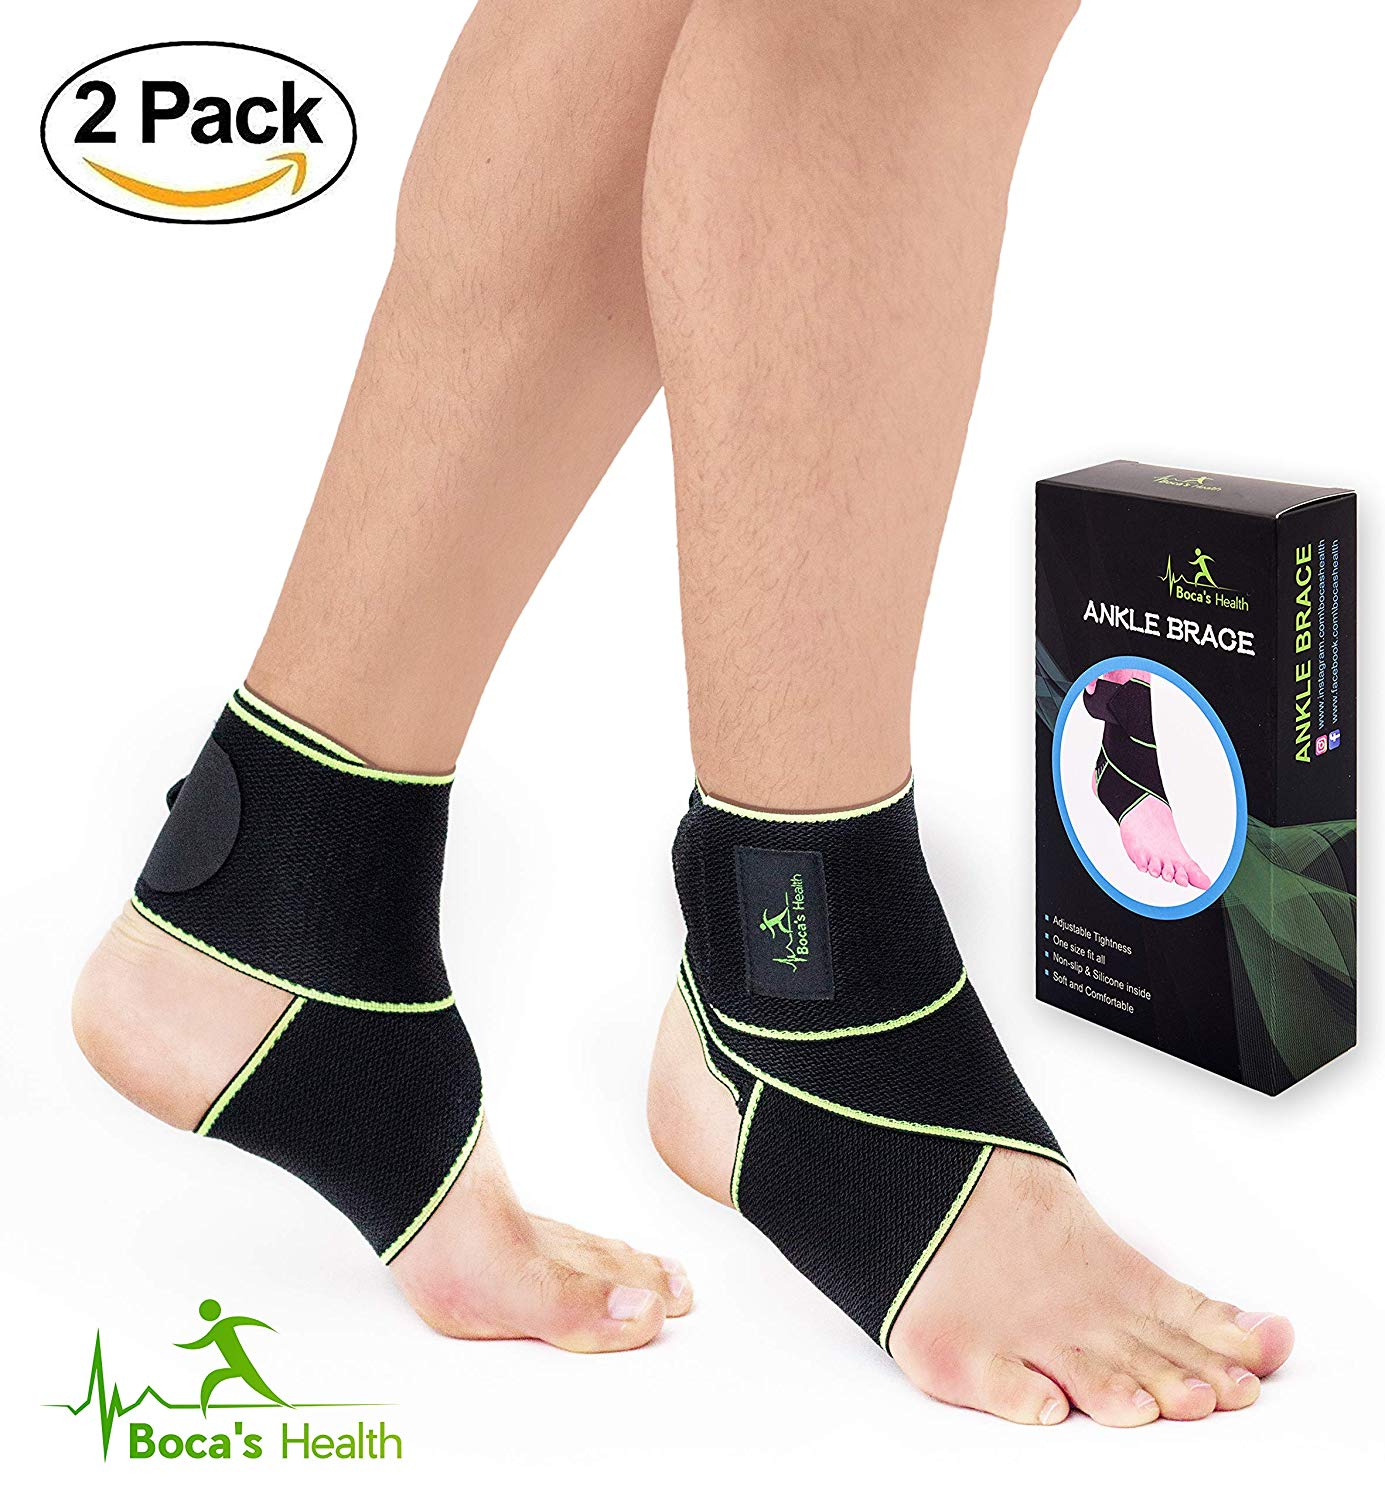 b99d98a36f8d Ankle Brace for Women and Men - Adjustable One Size Fits All - Comfortable  and Elastic